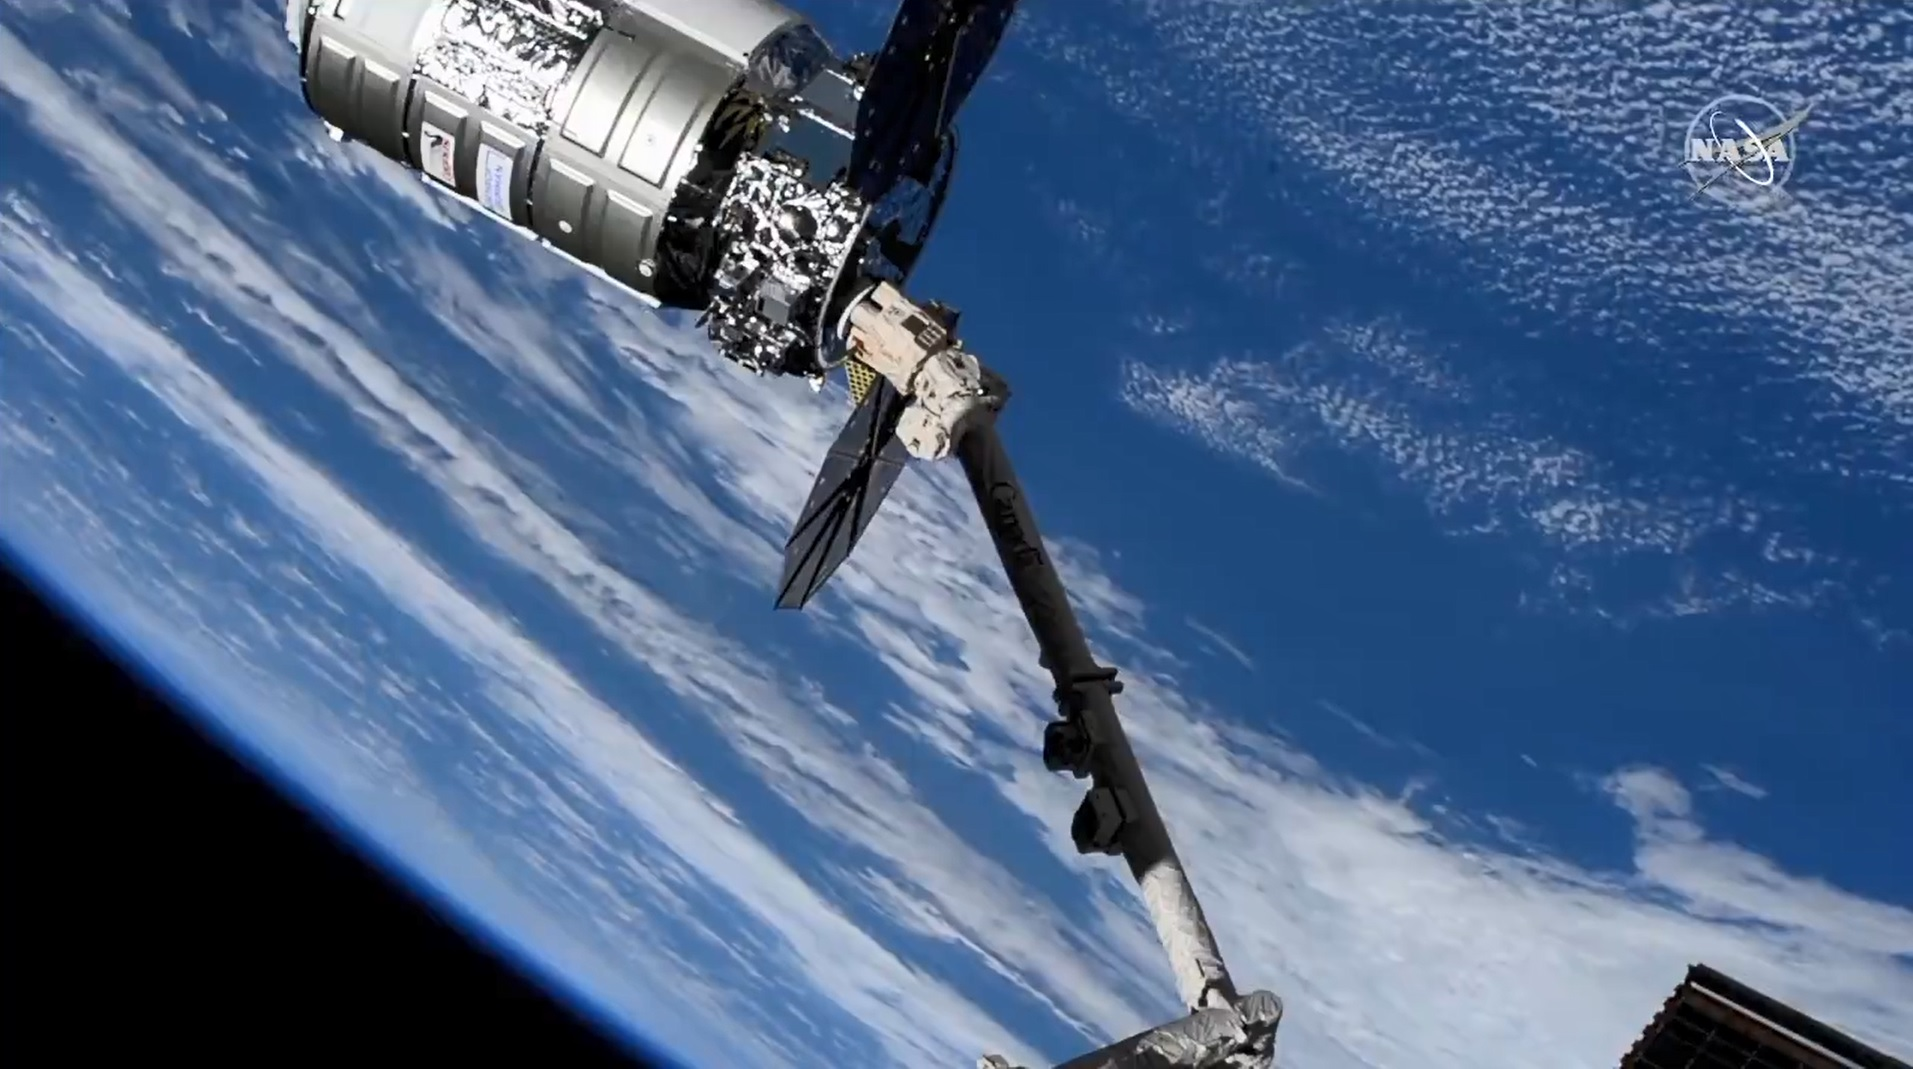 The Cygnus space freighter attached to the station robotic arm following a day-and-a-half trip after its launch from Virginia. Credit: NASA TV